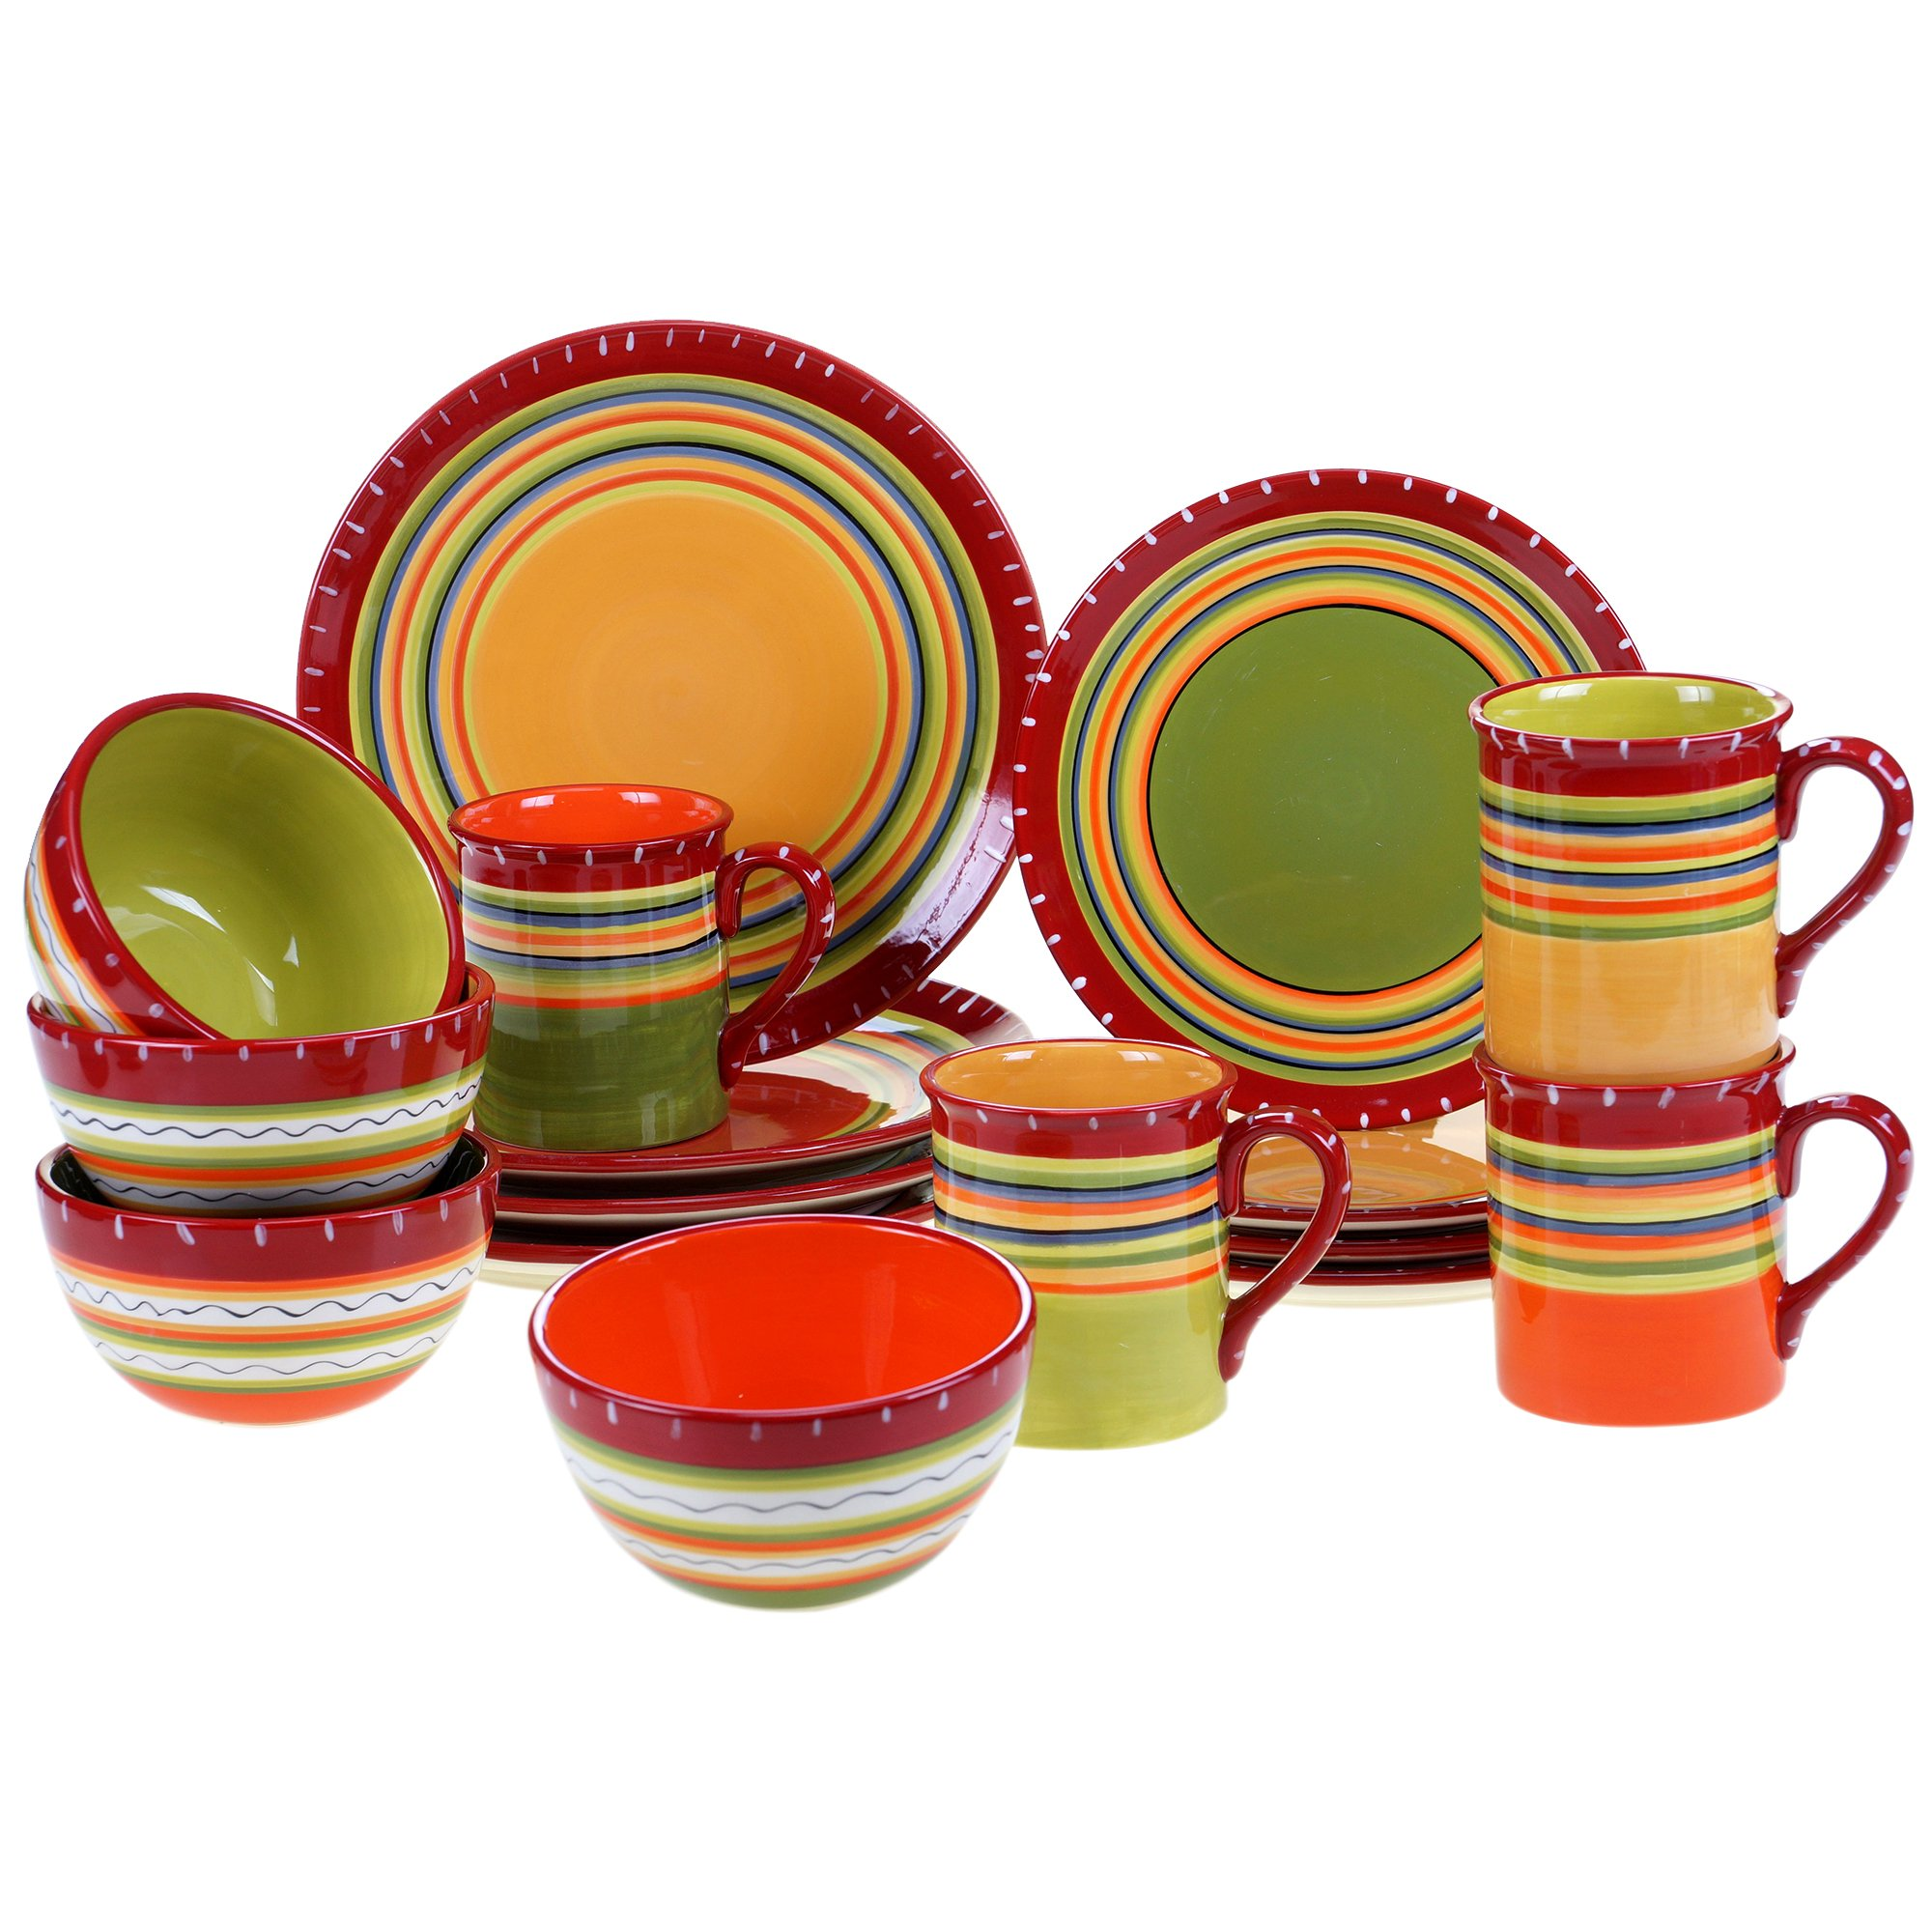 Certified International Corp 89090 Hot Tamale Dinnerware Set, Multicolor by Certified International (Image #1)